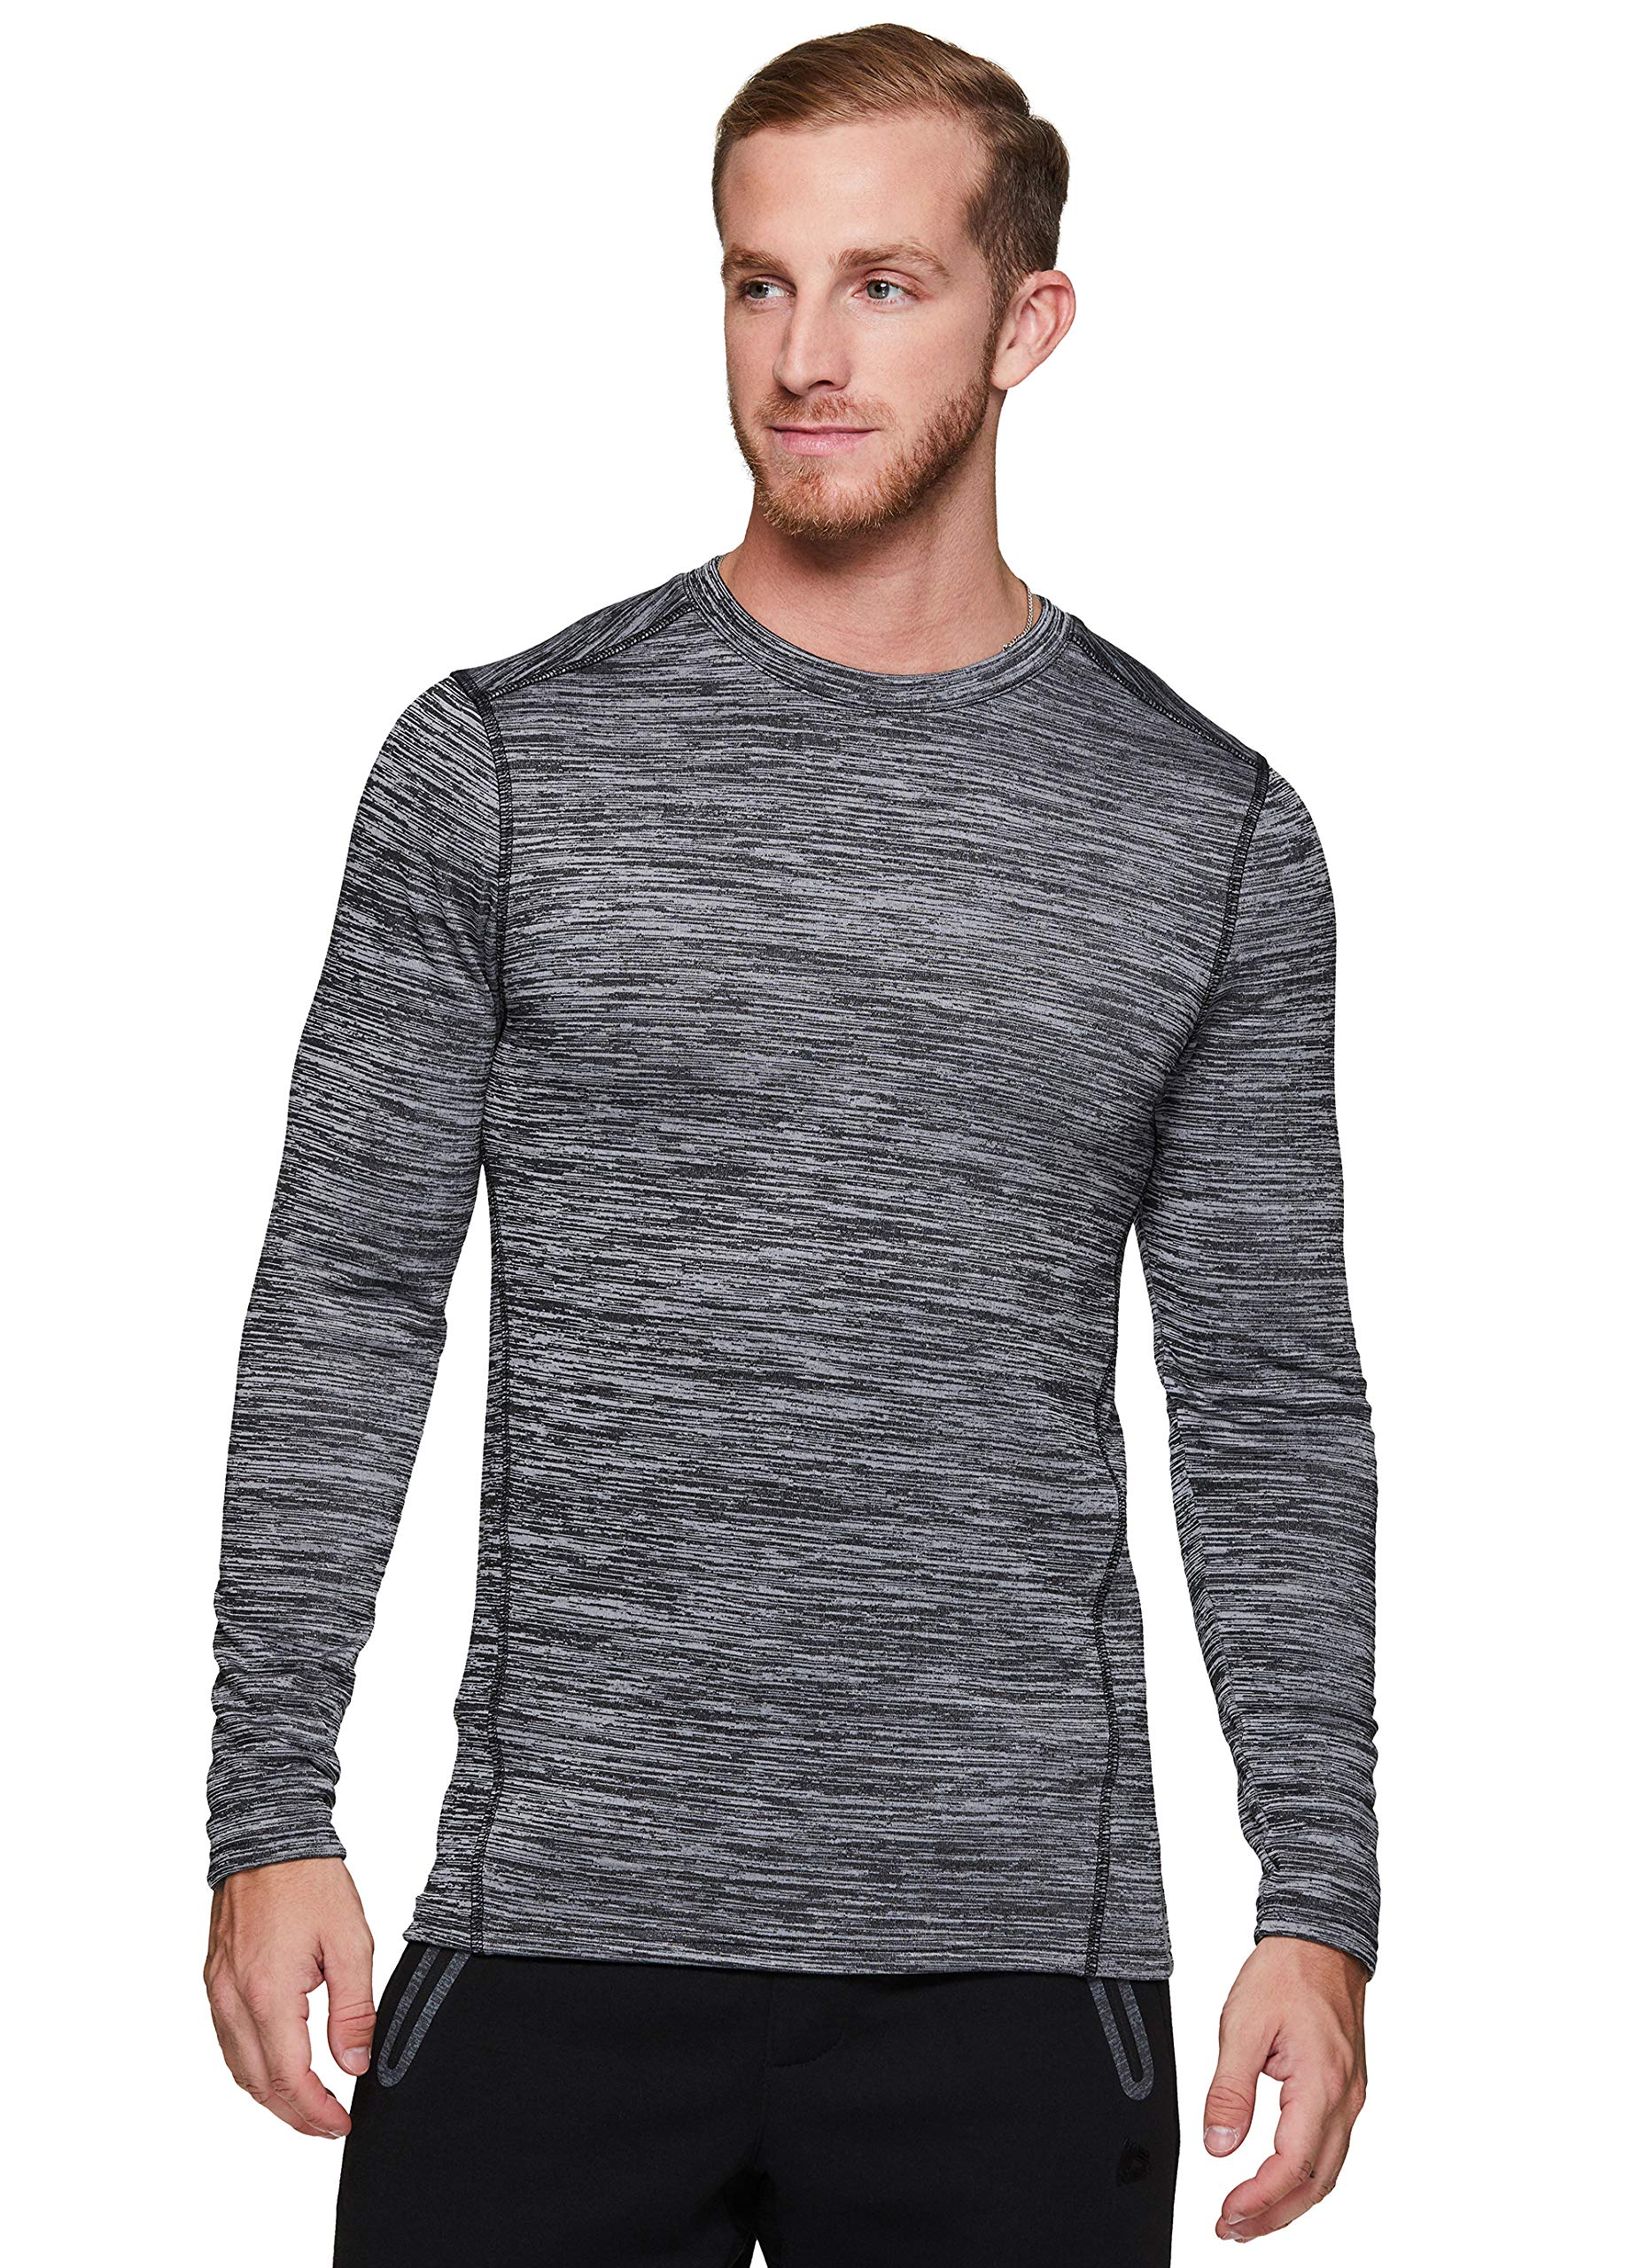 RBX Active Men's Athletic Performance Long Sleeve Crew Neck Fleece Lined Insulated Fitted Base Layer T-Shirt